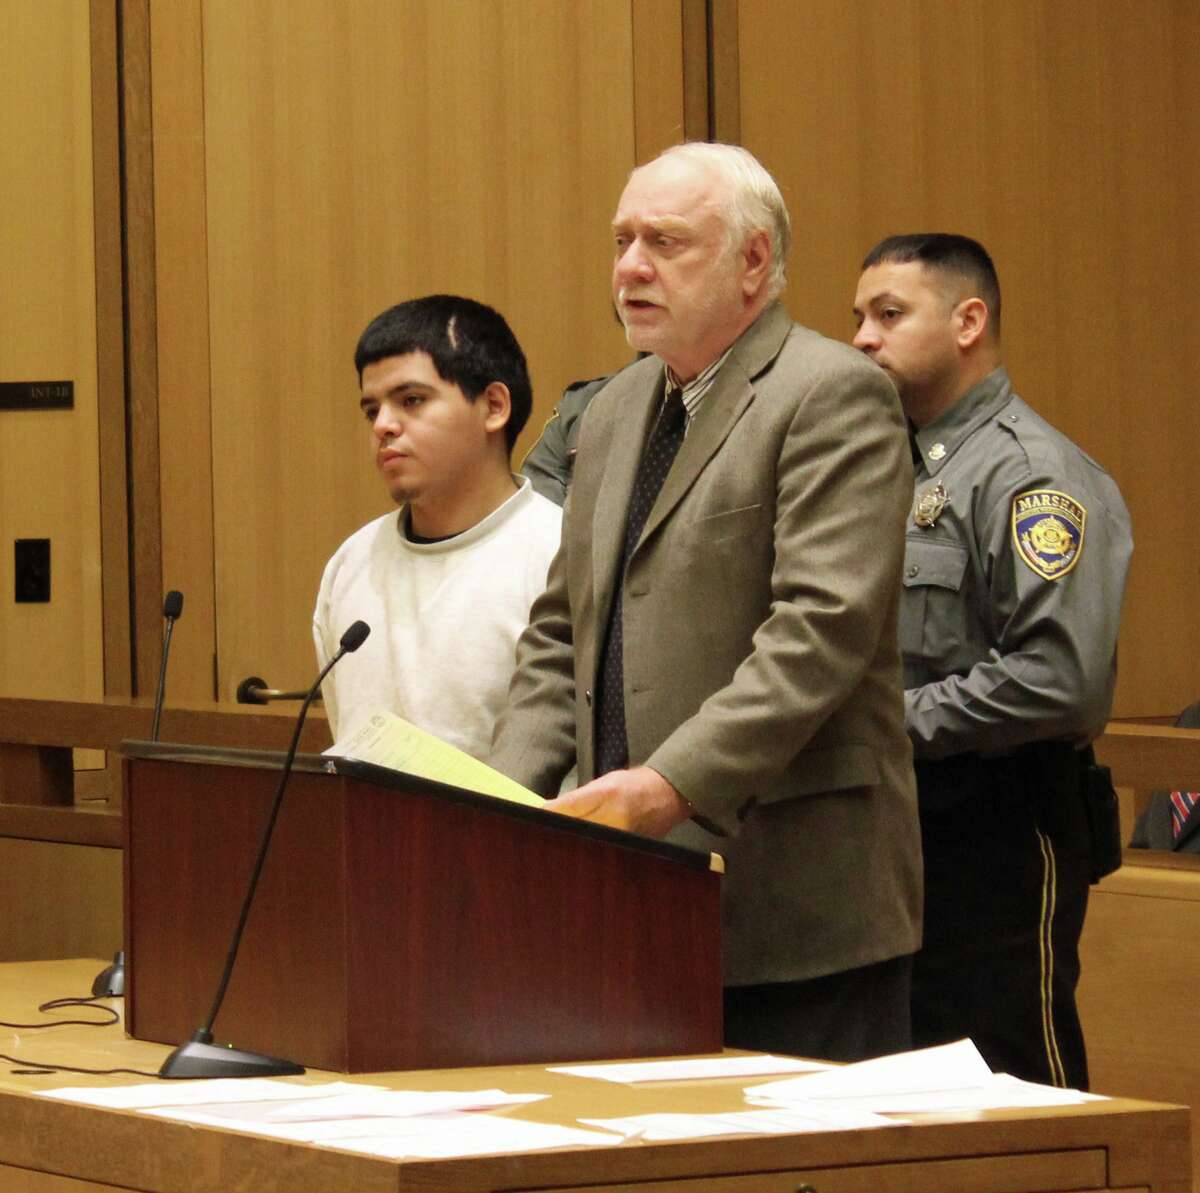 Jerry Diaz, 18, was arraigned at Stamford Supreme Court Nov. 19 with a number of charges including two counts of second-degree manslaughter. Diaz was the driver of the Nissan Altima that crashed into two utility poles in the South End on Aug. 26 that resulted in the deaths of two passengers.